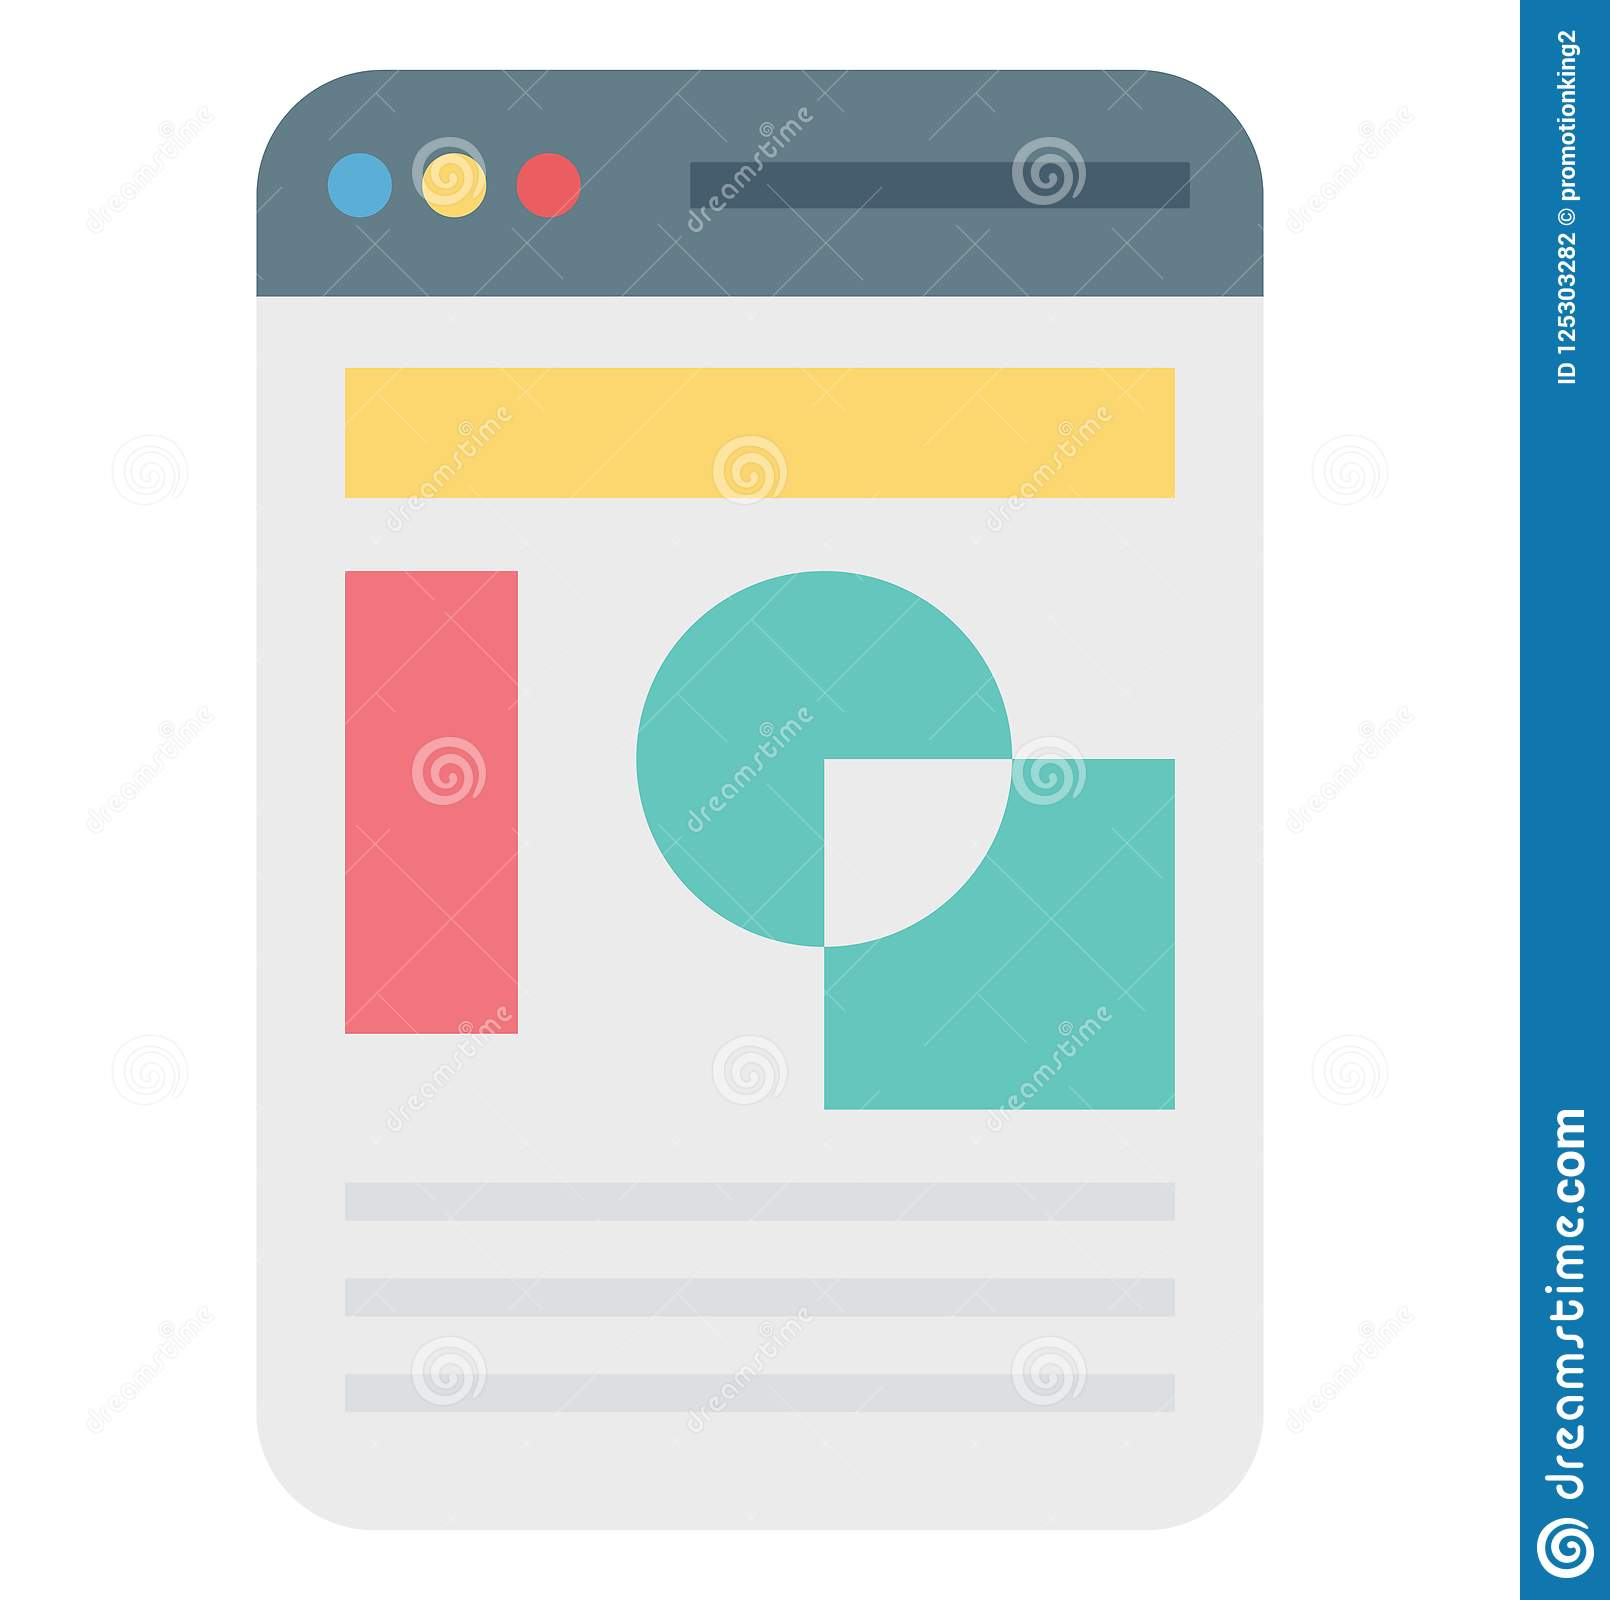 web template, web layout vector icon editable stock vector